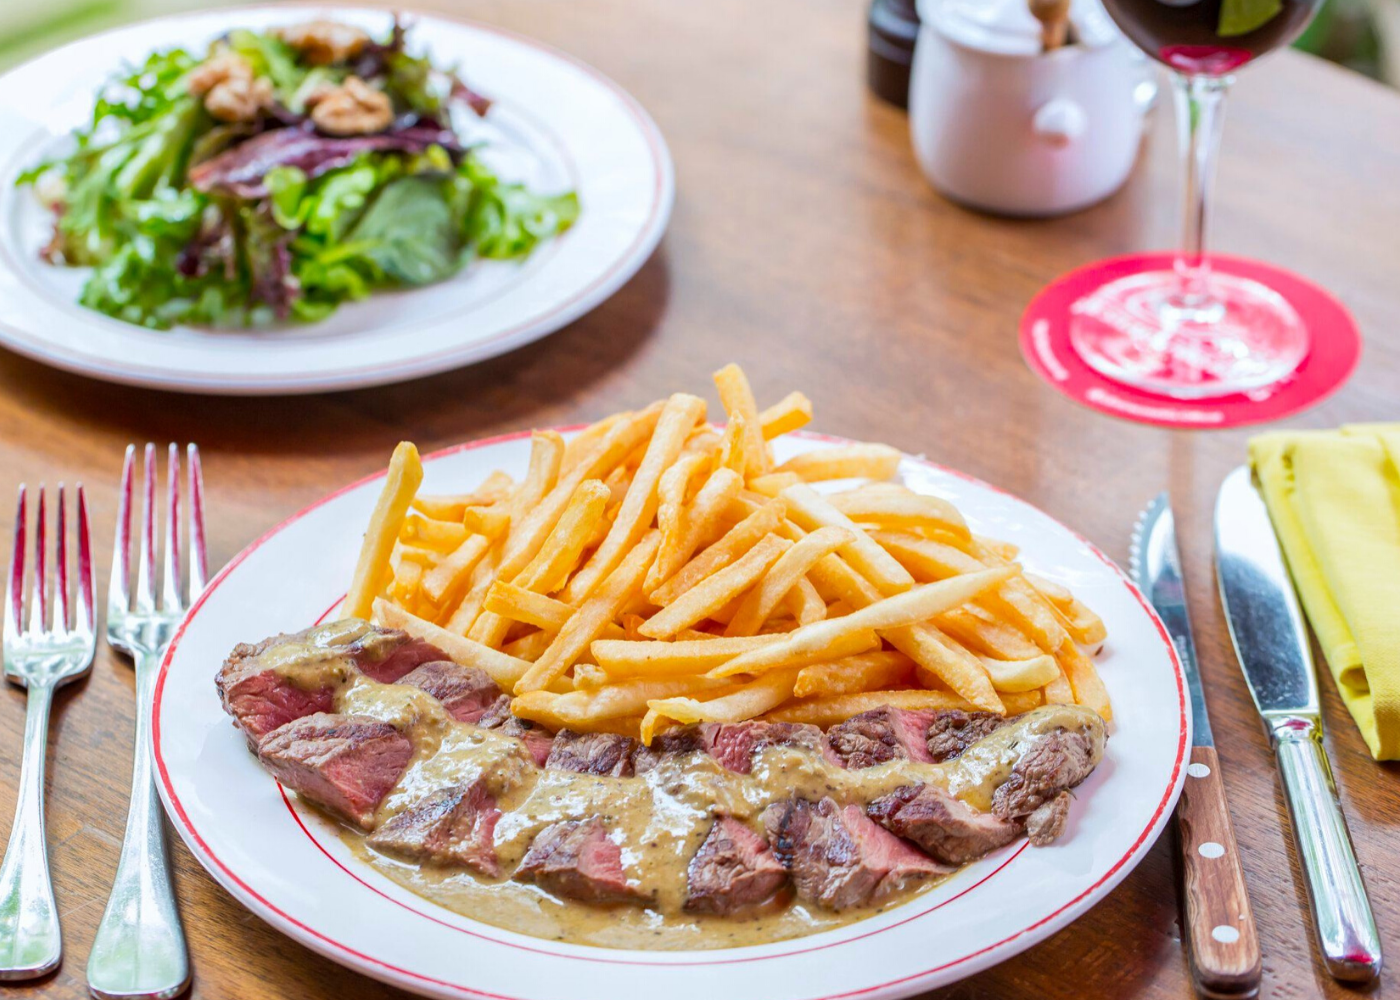 French restaurant in Singapore: L'Entrecote